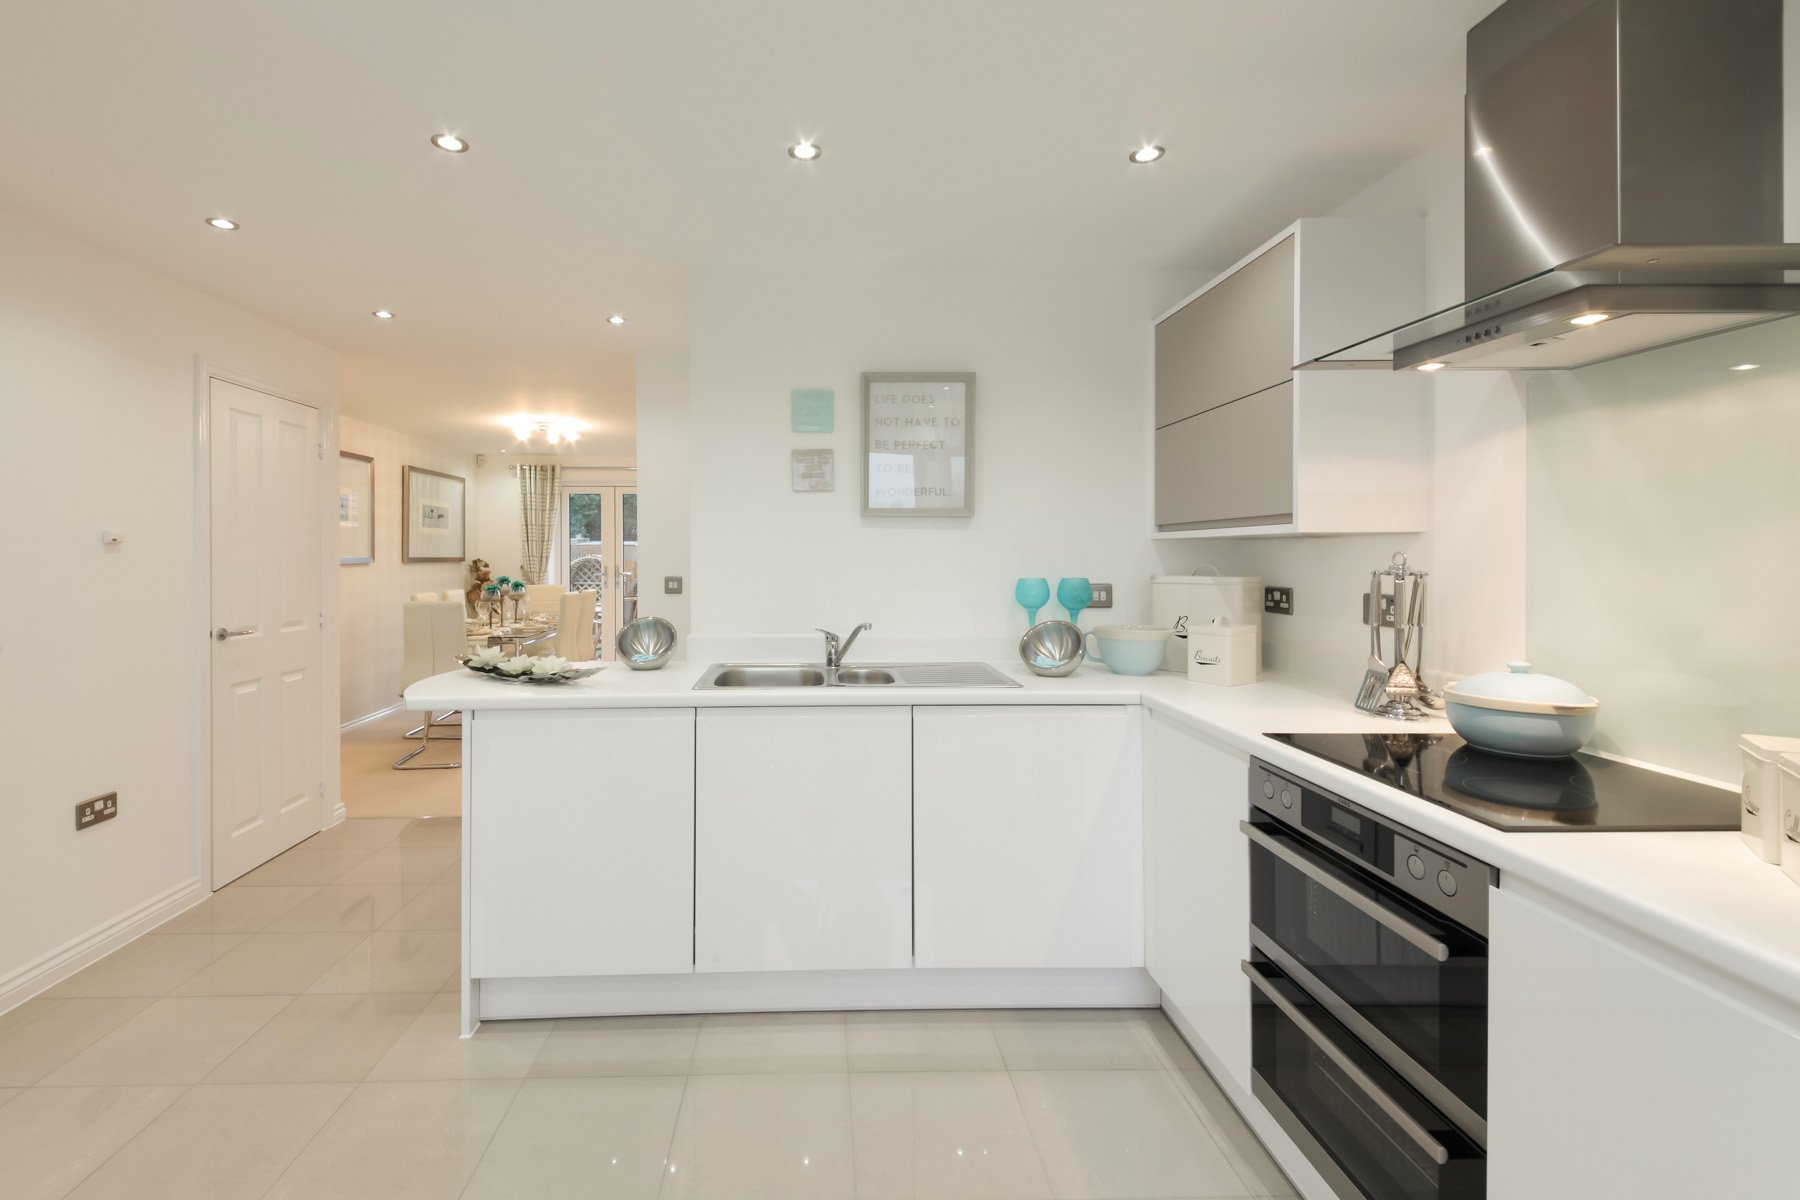 TW Exeter - Sherford - The Danbruy example kitchen 2